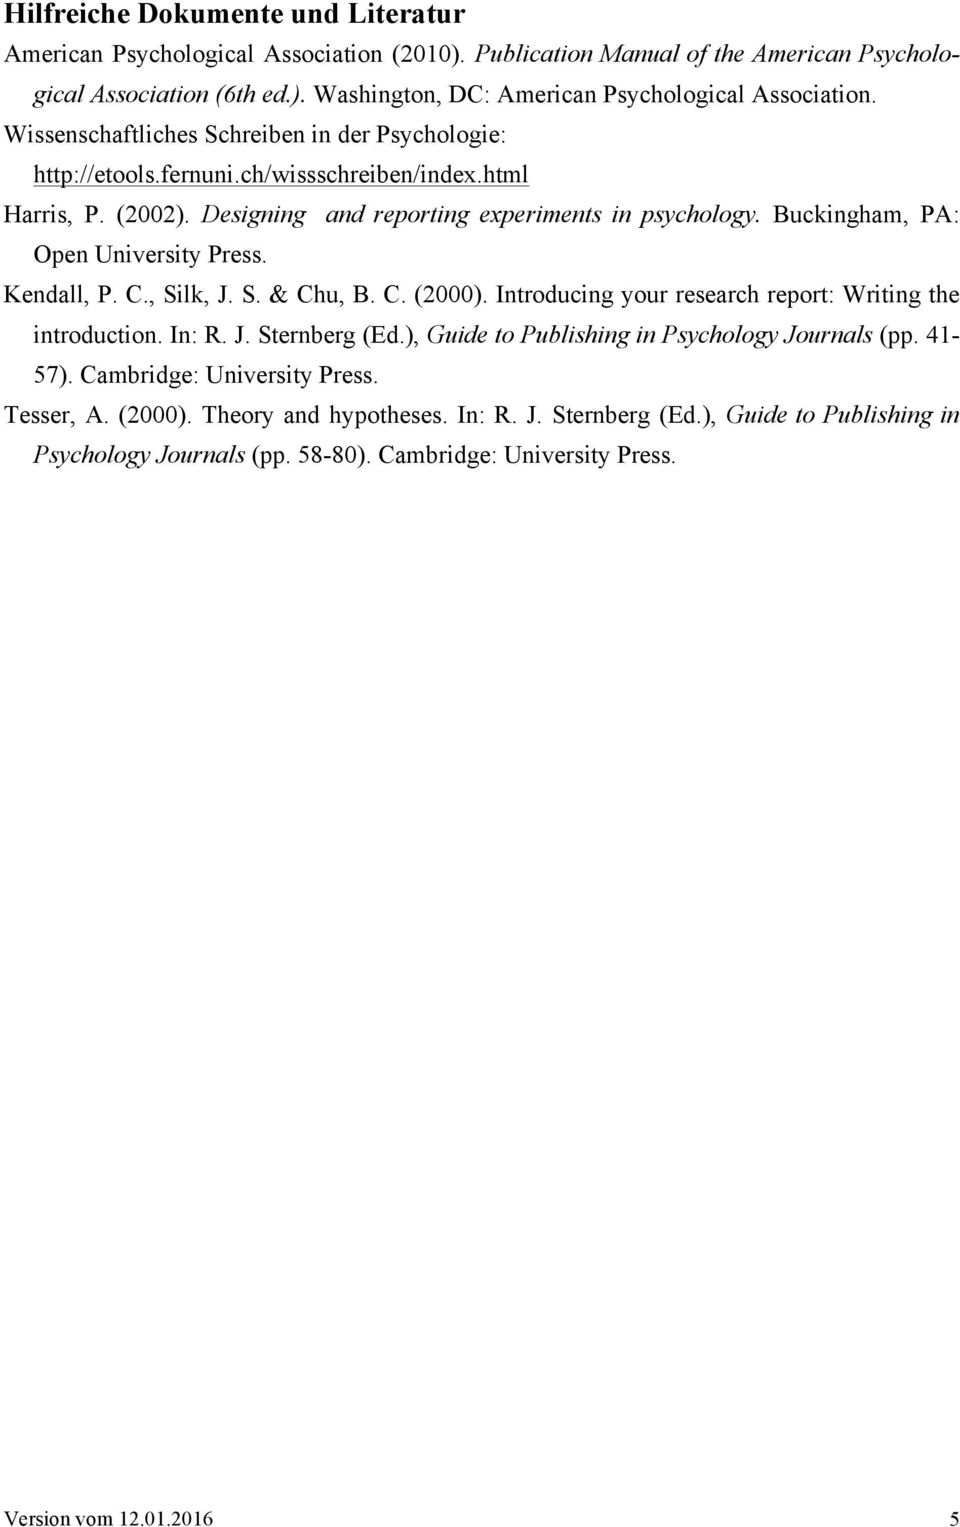 Buckingham, PA: Open University Press. Kendall, P. C., Silk, J. S. & Chu, B. C. (2000). Introducing your research report: Writing the introduction. In: R. J. Sternberg (Ed.